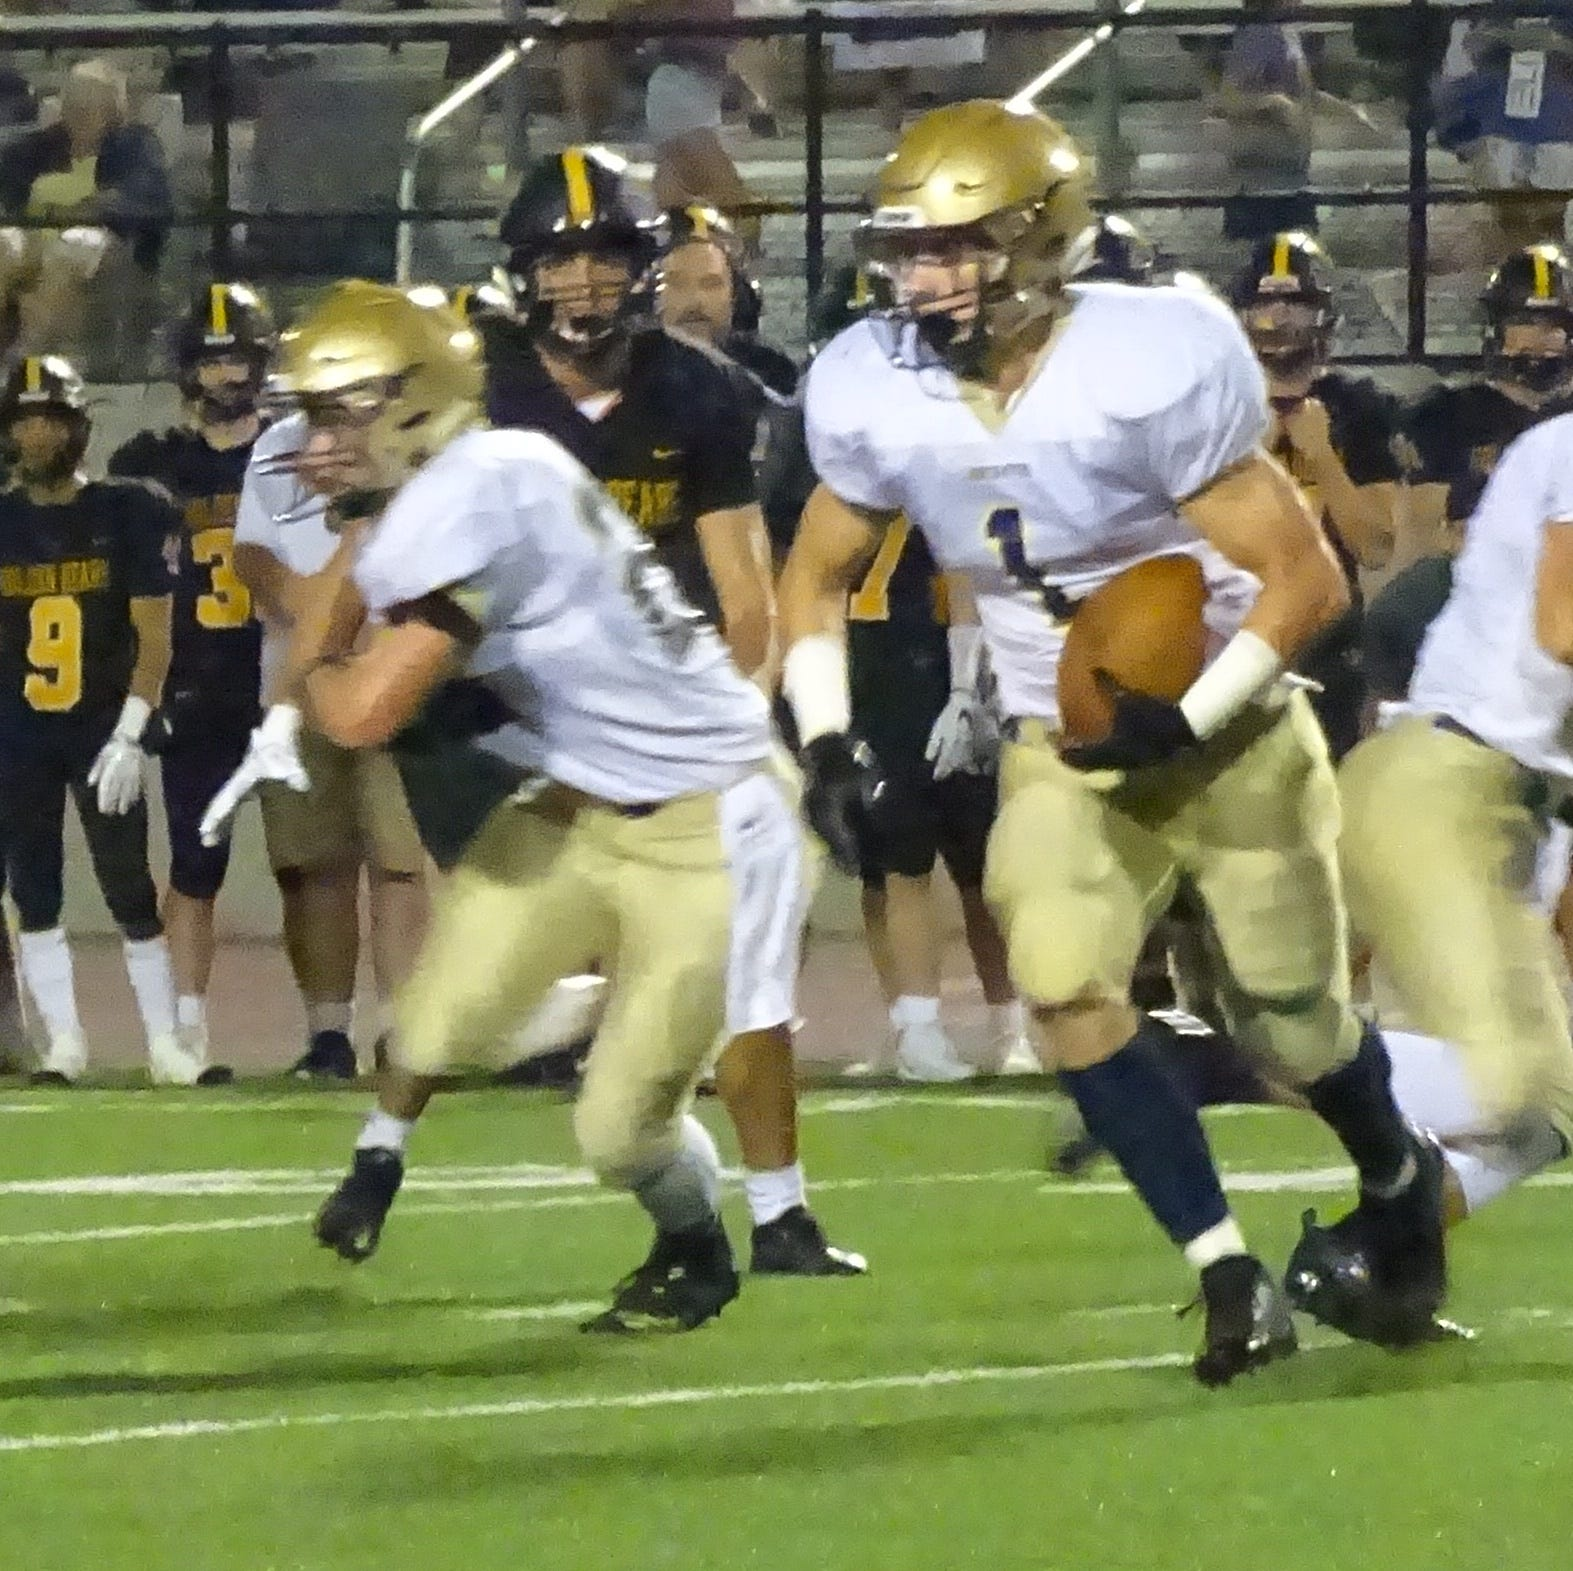 HS Football: Four takeaways from Lancaster's thrilling 29-28 win over Upper Arlington